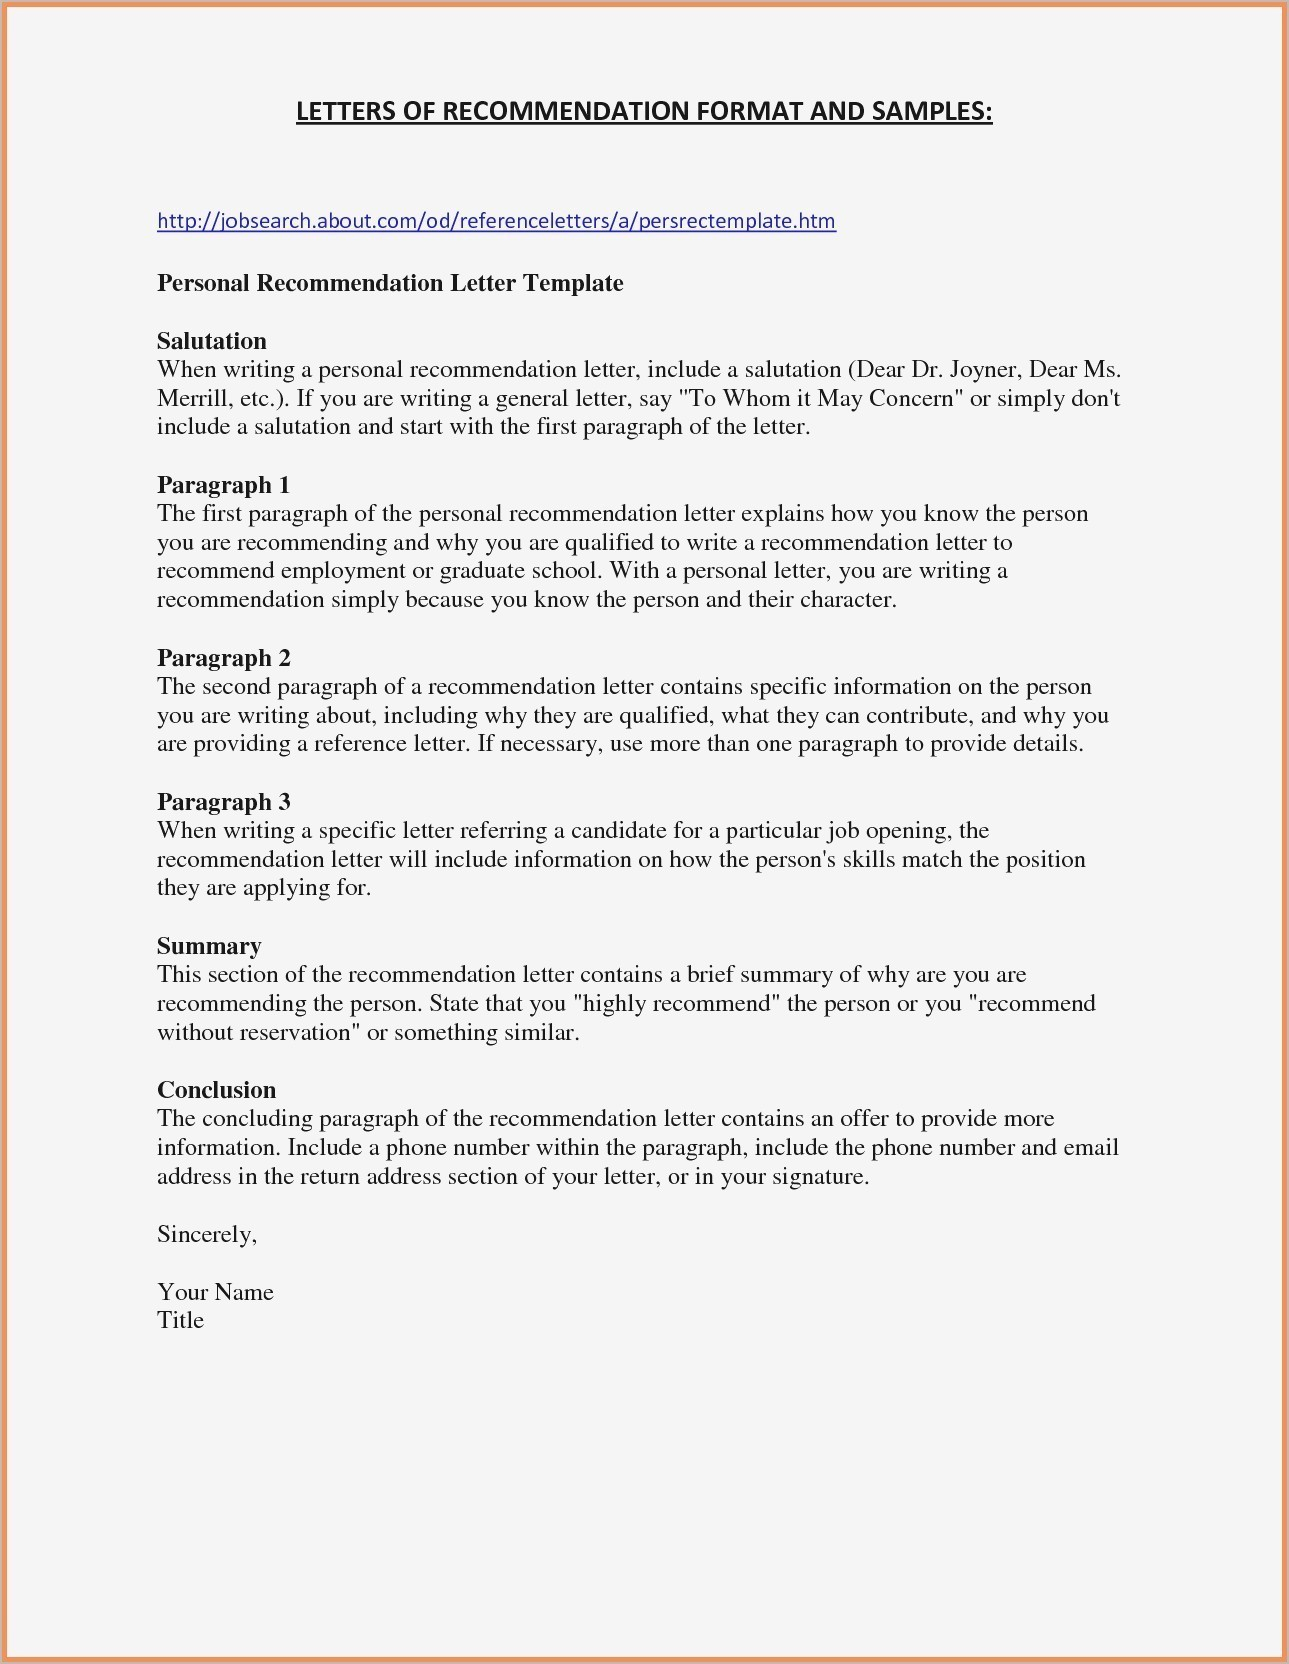 Job Reference Letter Template - Job Re Mendation Letter Samples Valid Sample Job Re Mendation